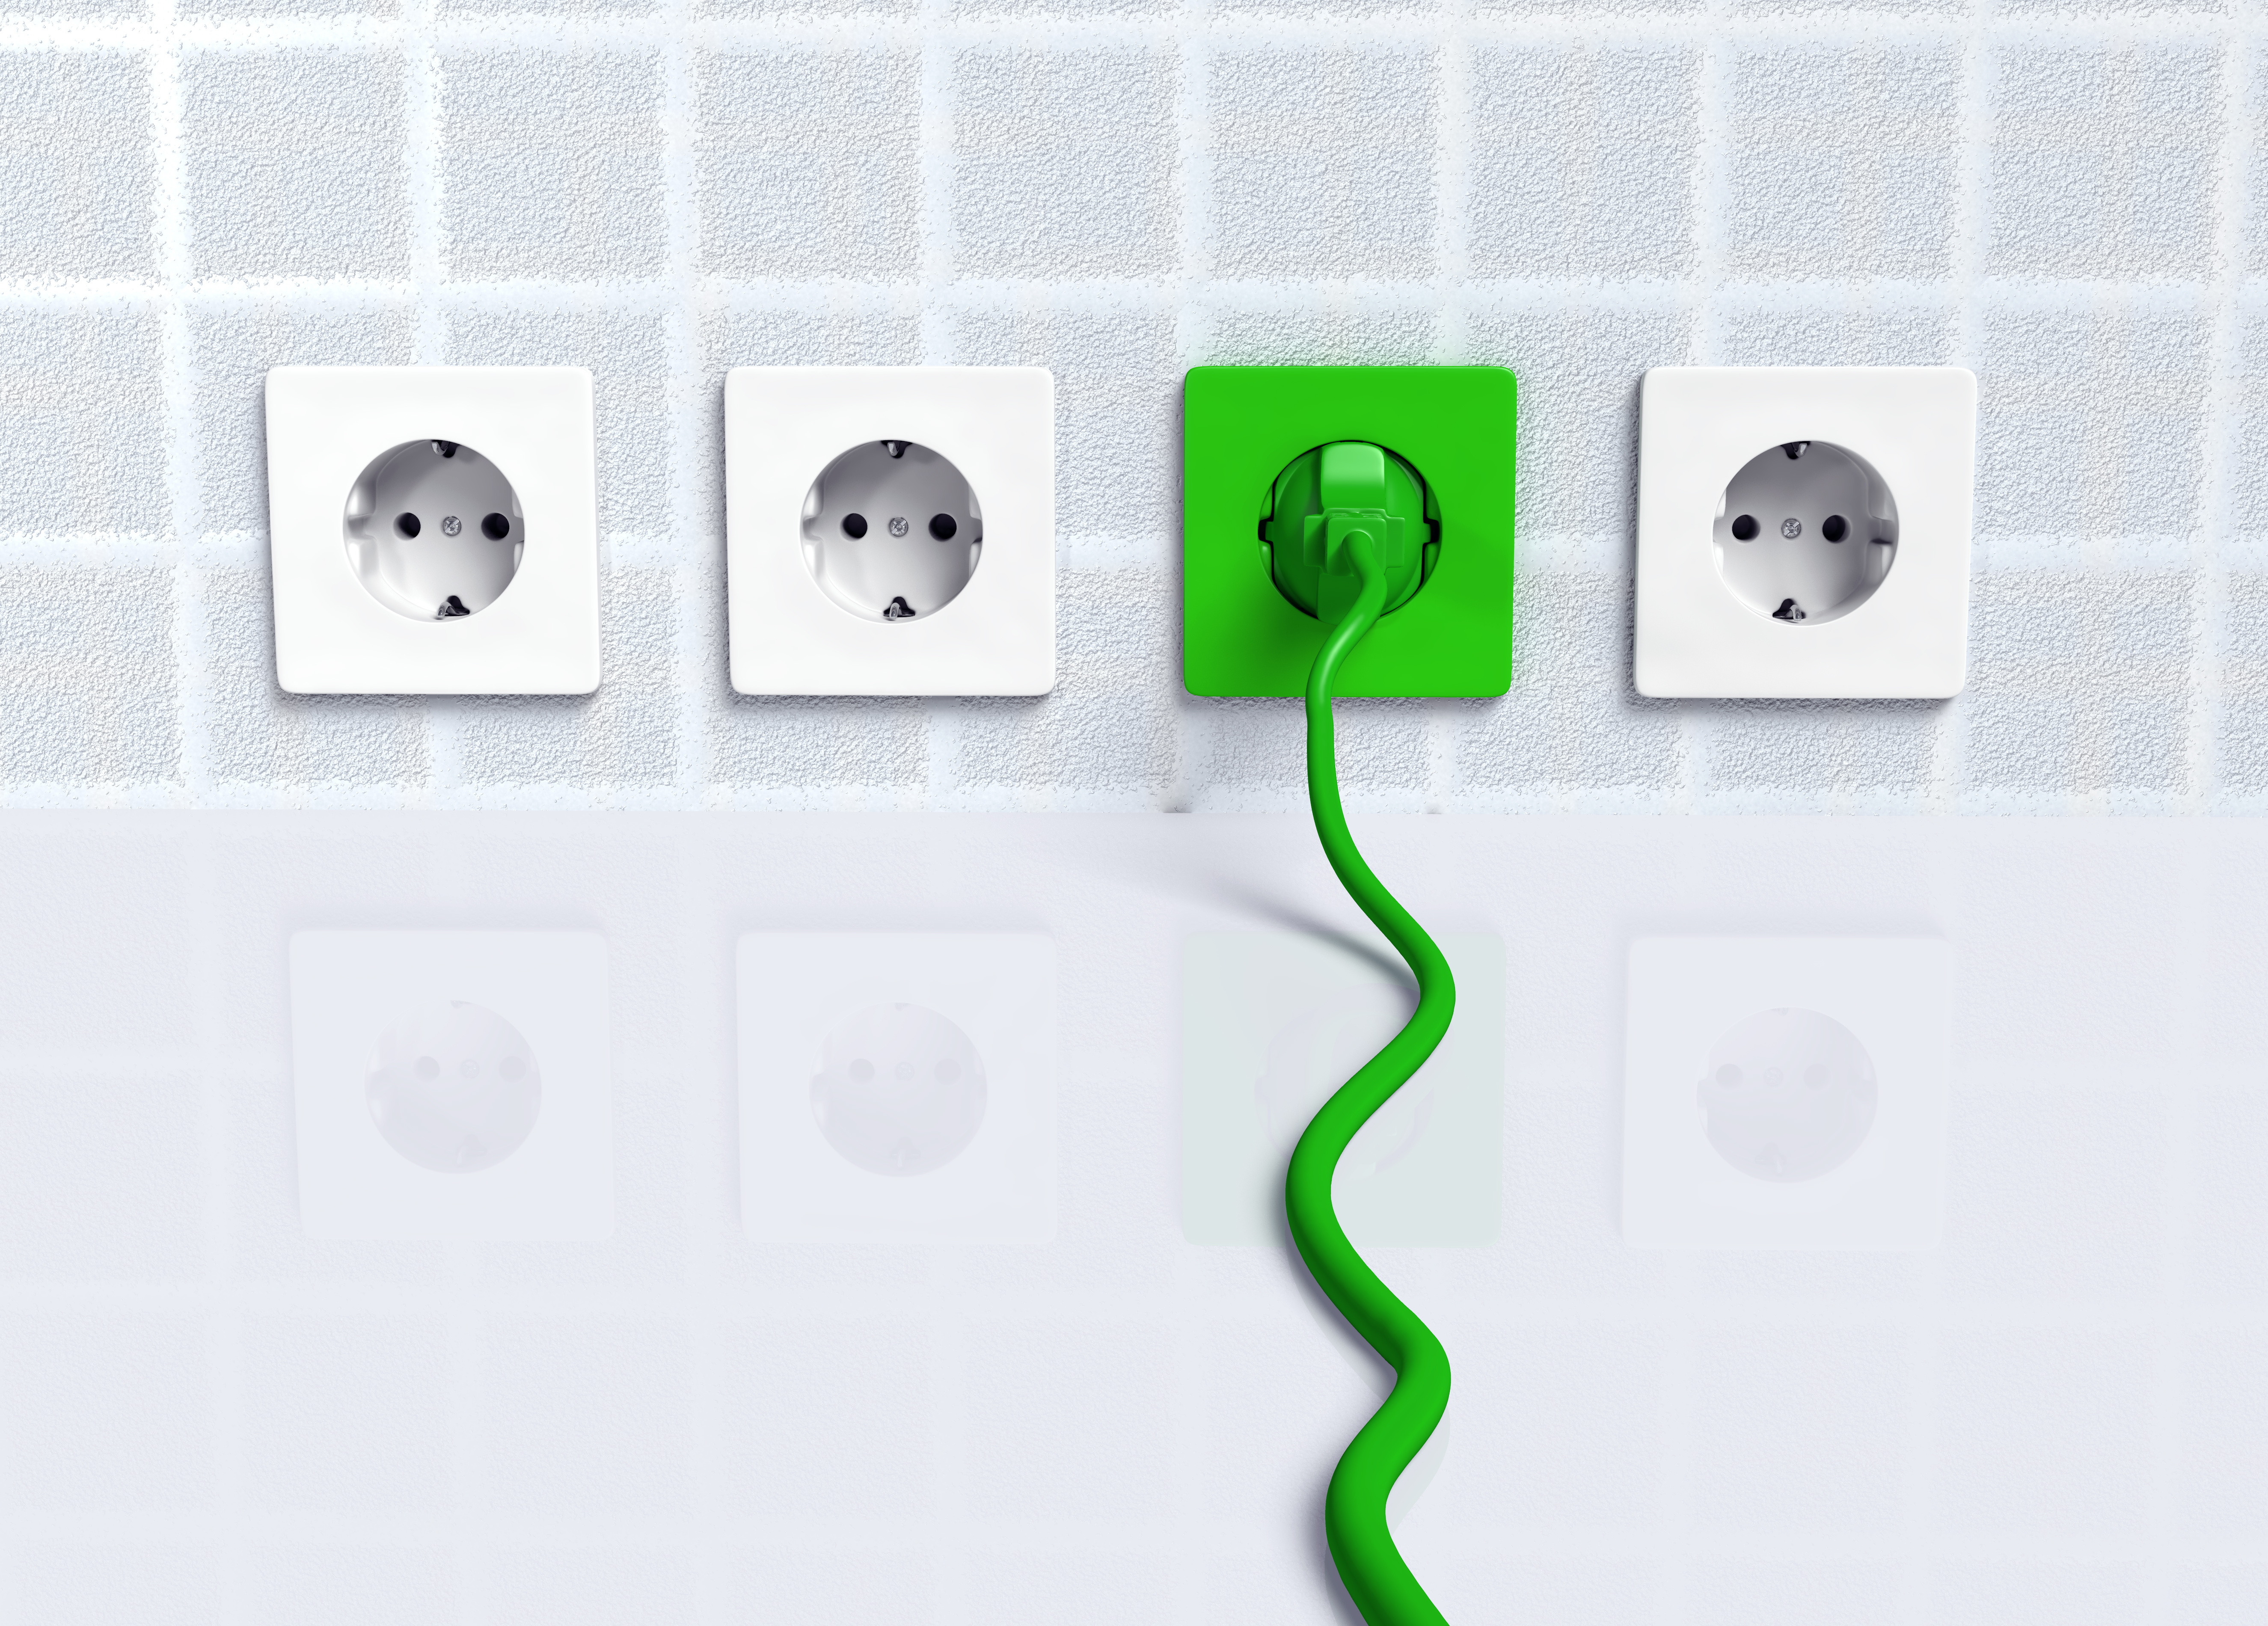 ecological green plug is connected to a green socket placed on the wall instead of the white ones